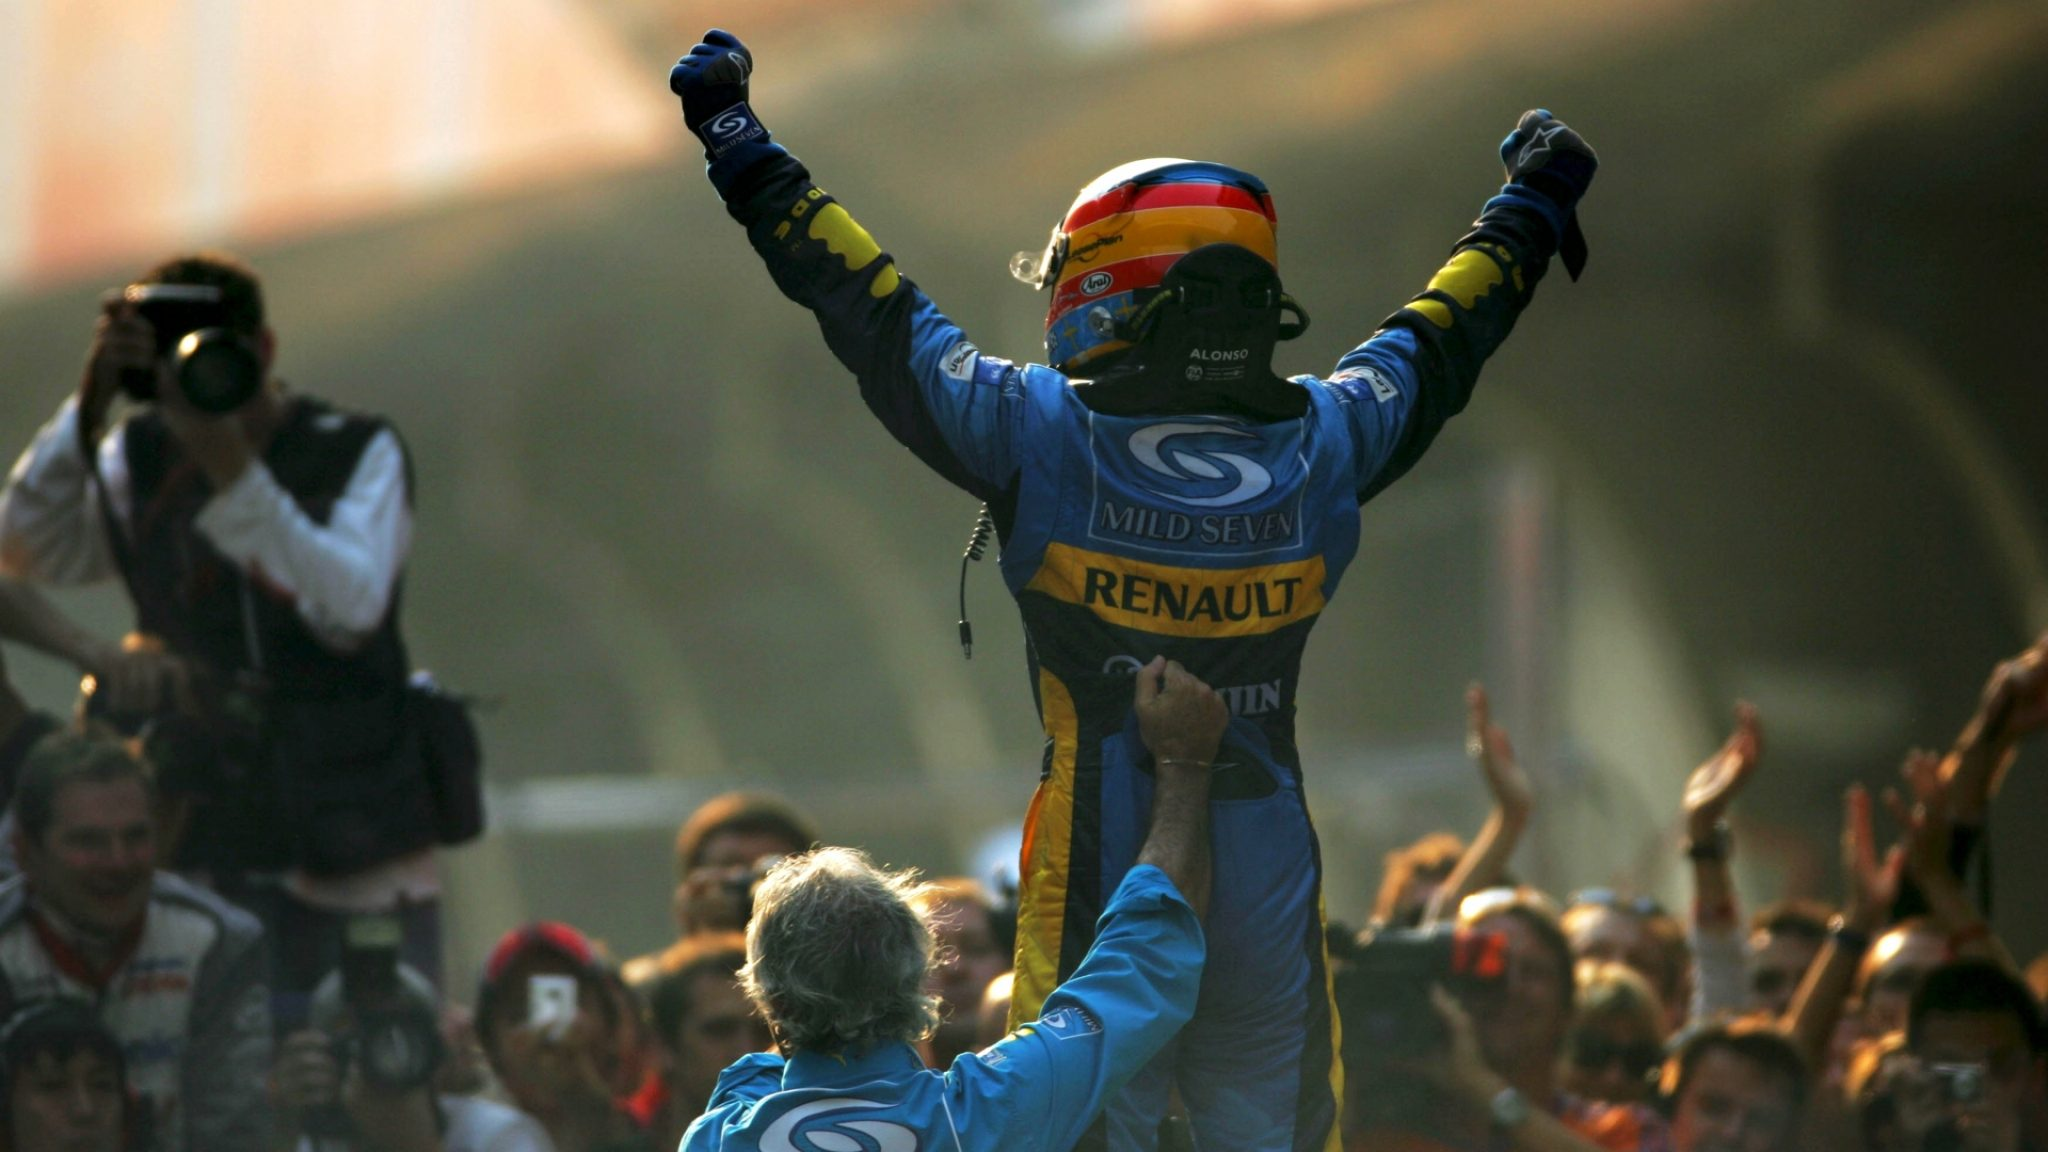 859201fernando Alonso Wallpaper Momentogp